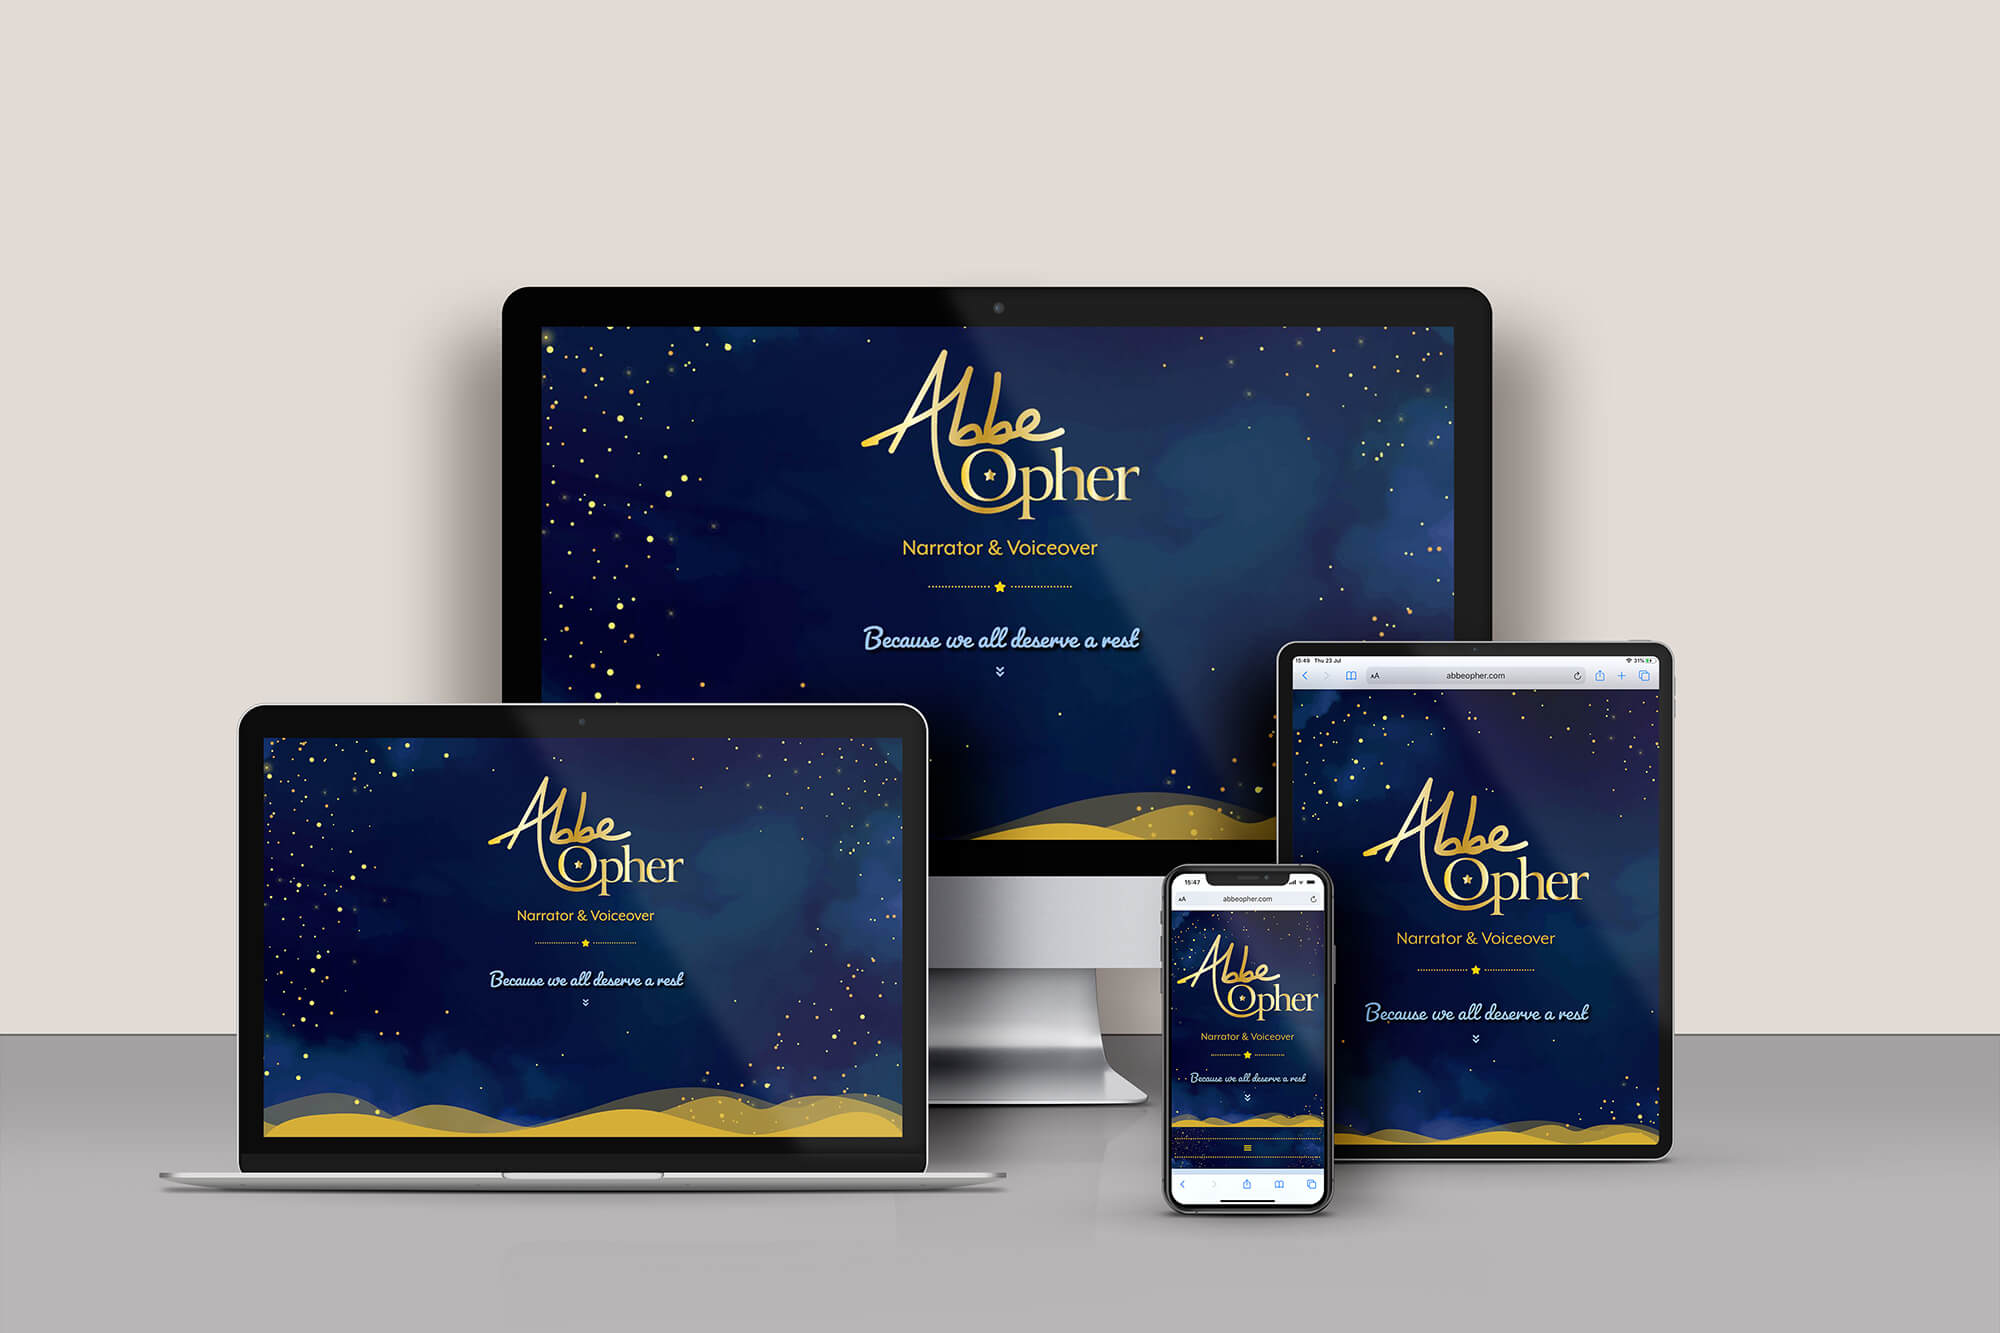 Abbe Opher voiceover website responsive design